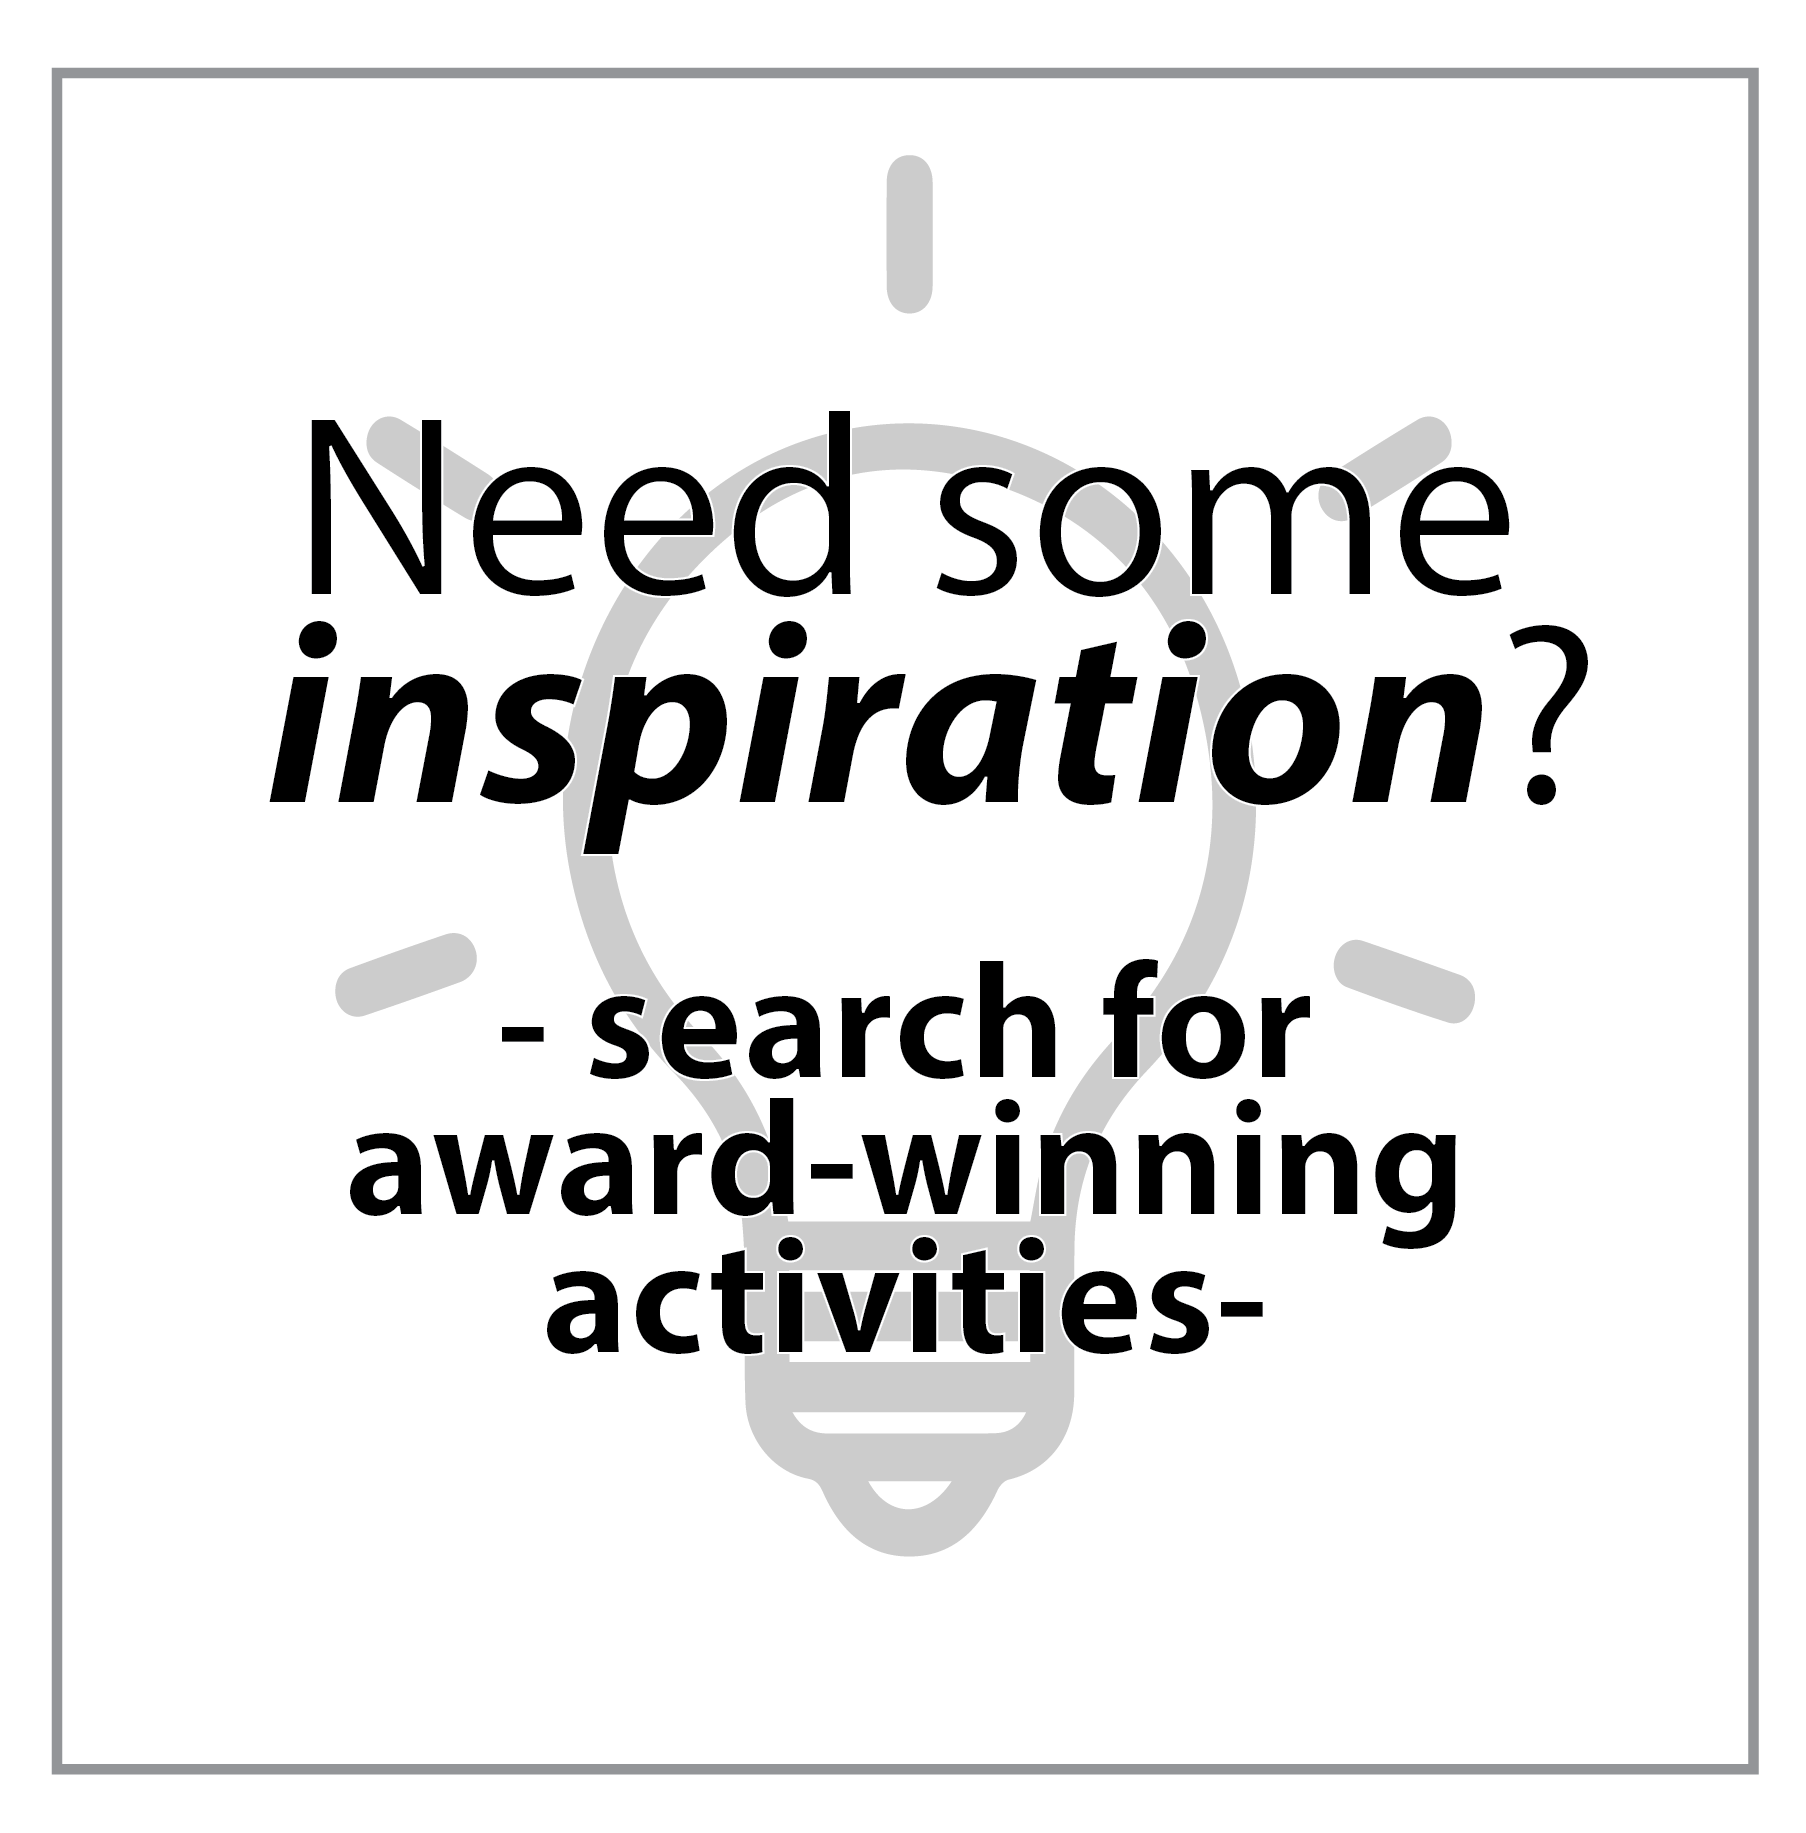 Search by winning activity